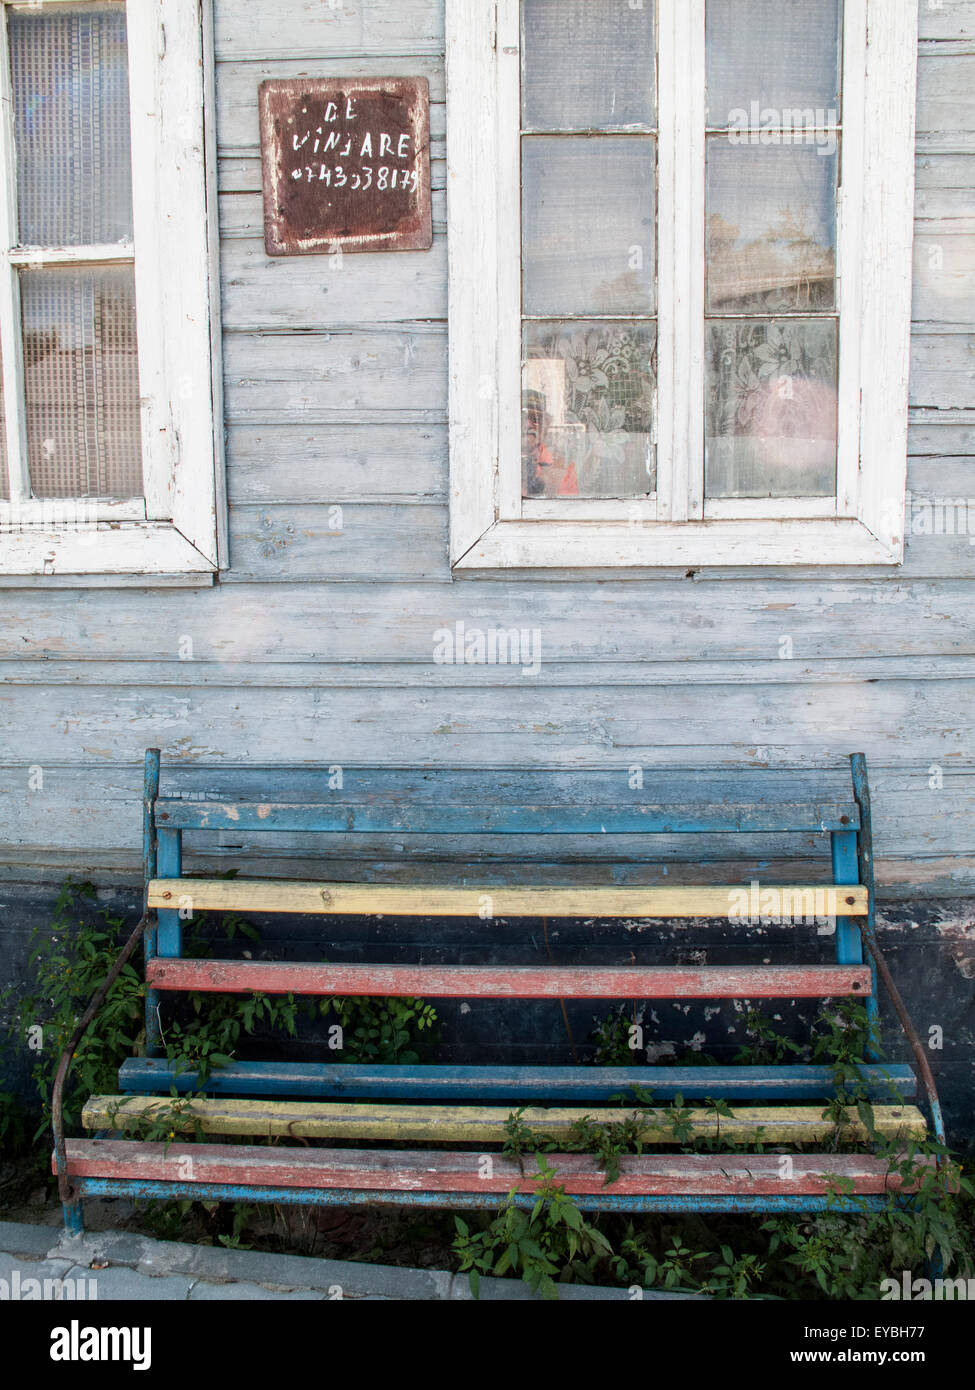 An old house in Romania with the sign 'For Sale' - Stock Image